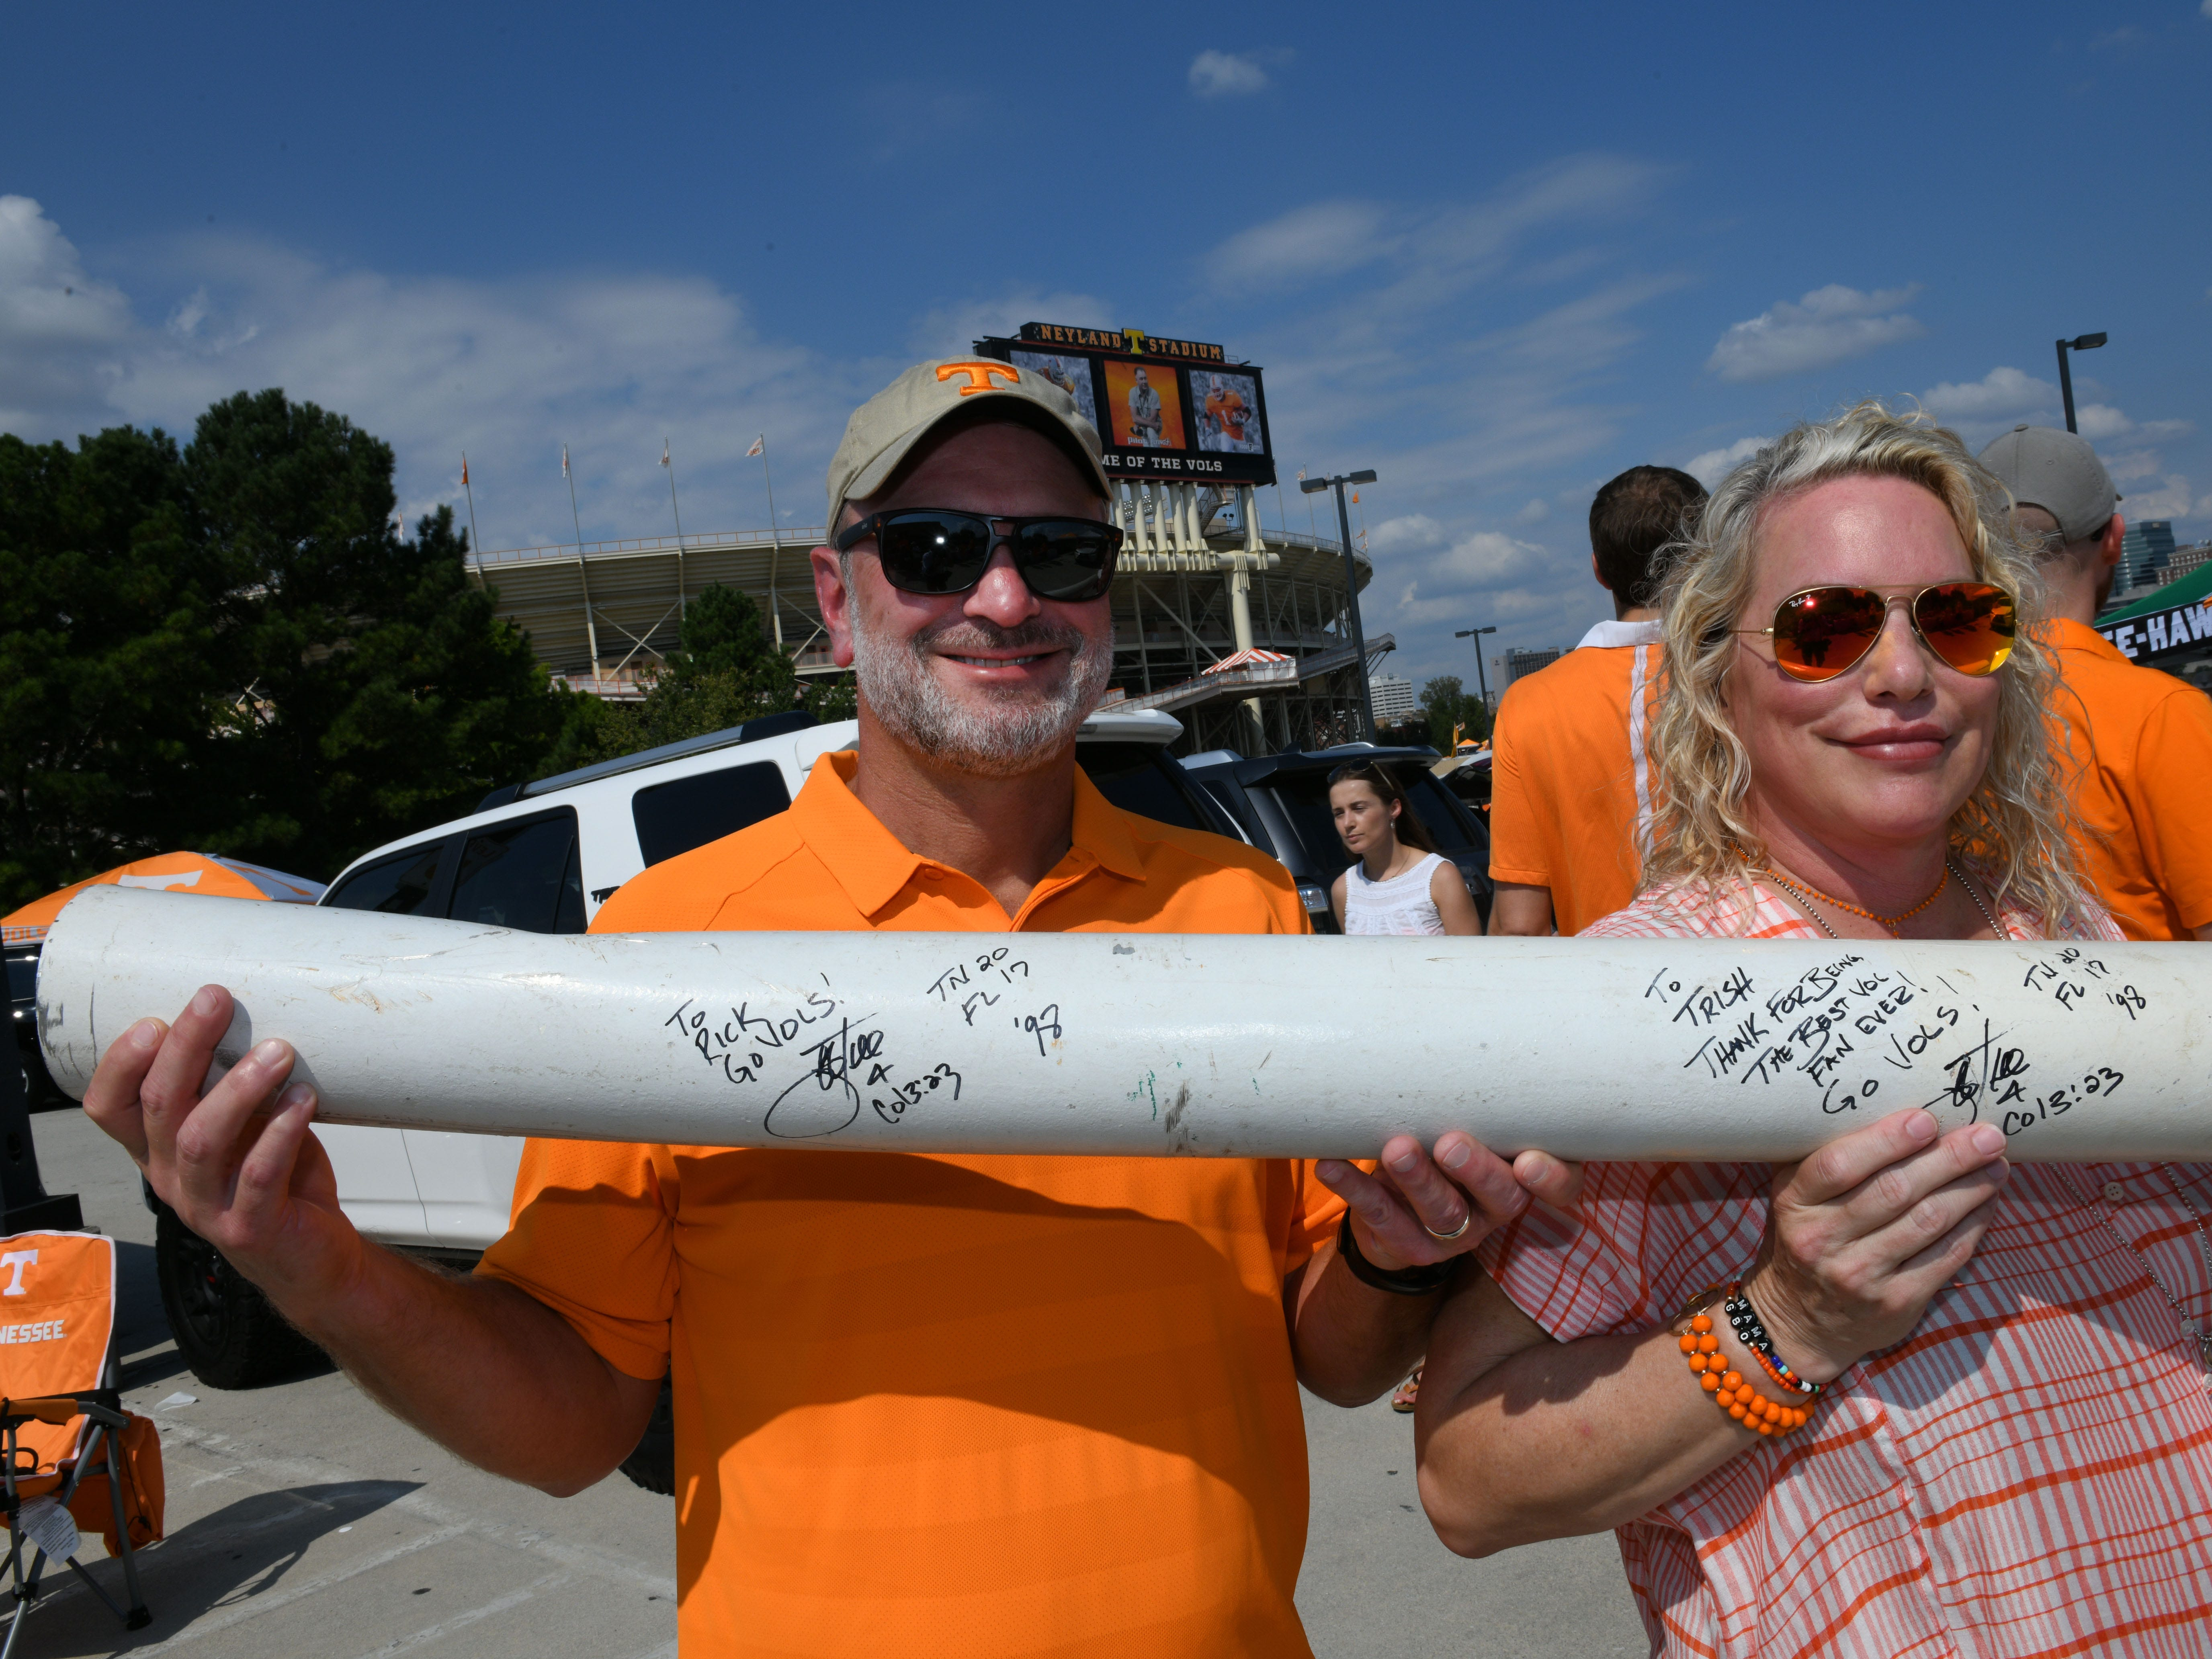 Buzz and Trish Nabers hold their piece of the 1998 goalpost from that TN vs. Fla game at their tailgate before the game against Florida in Neyland Stadium Saturday, September 22, 2018 in Knoxville, Tenn.